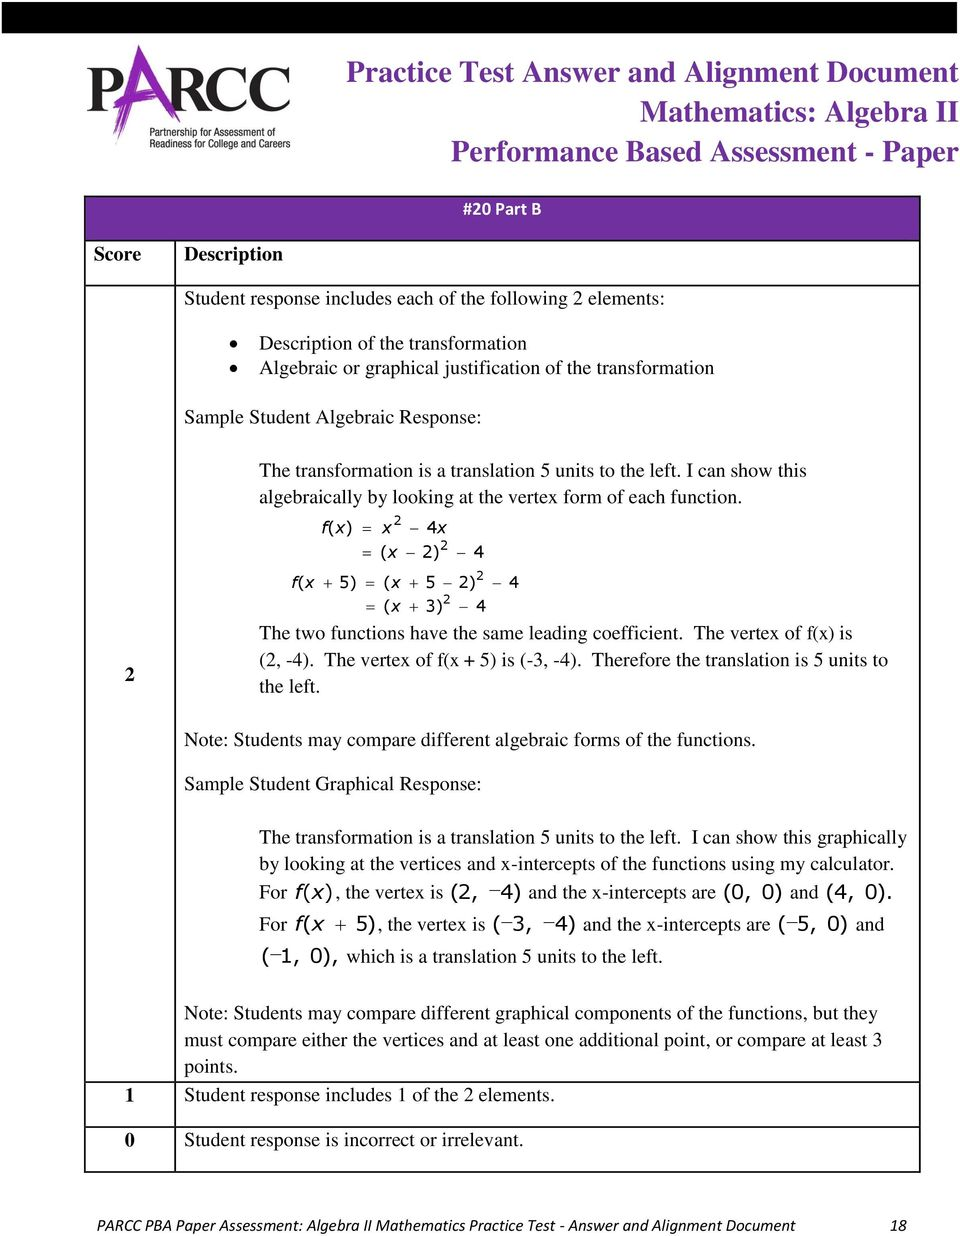 Practice Test Answer and Alignment Document Mathematics: Algebra II ...